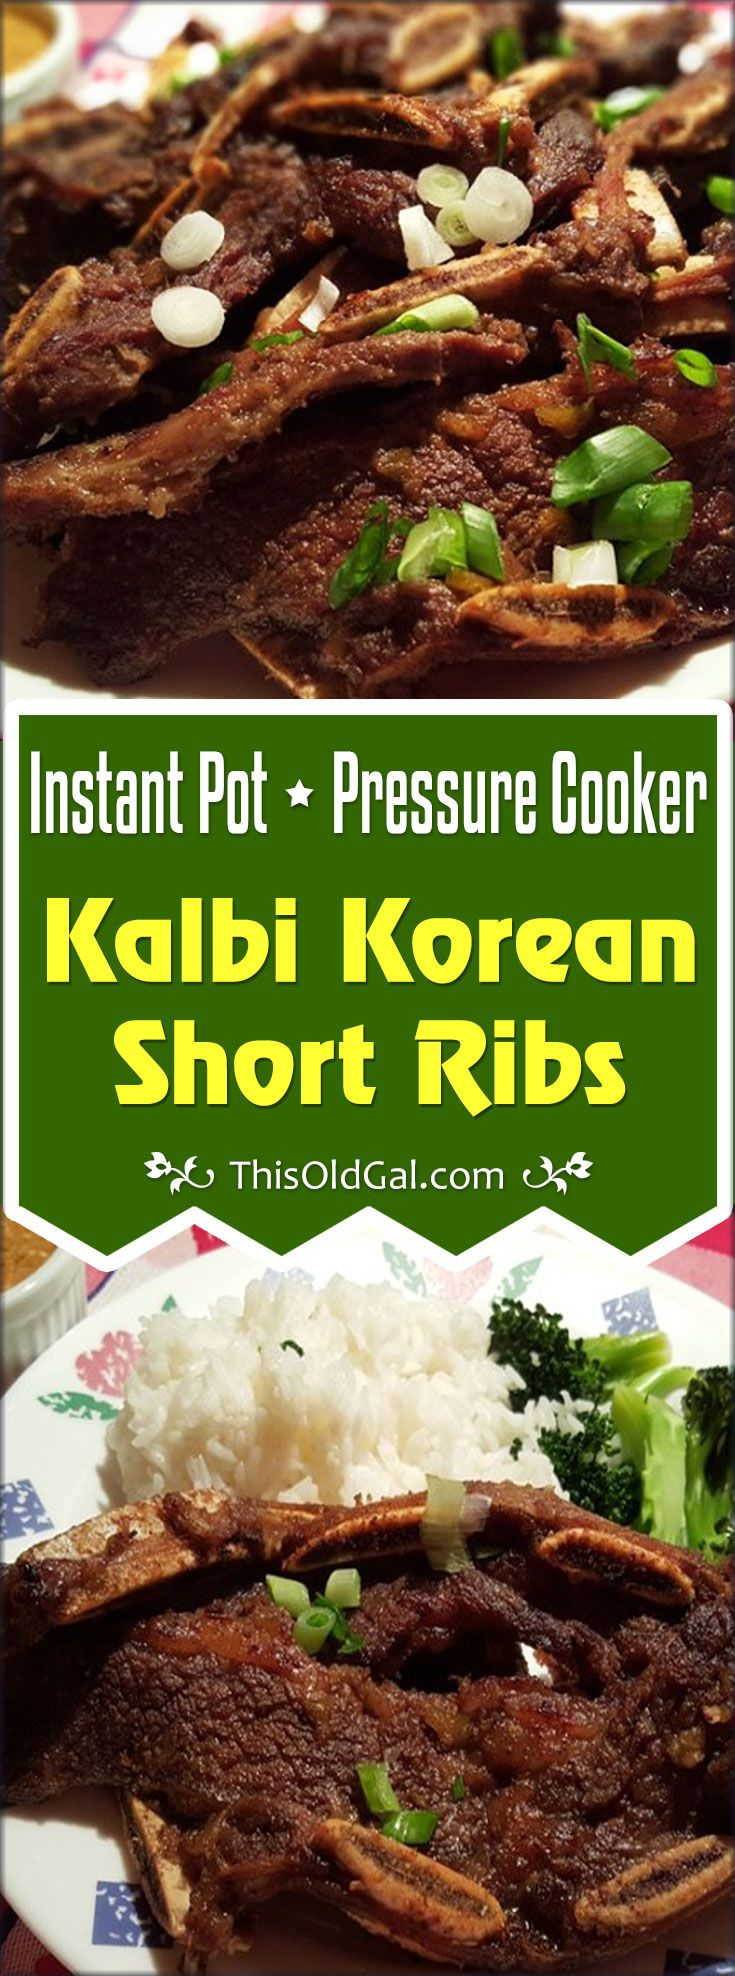 Pressure Cooker Kalbi Korean Short Ribs are so yummy when cooked in a Pressure Cooker. via @thisoldgalcooks